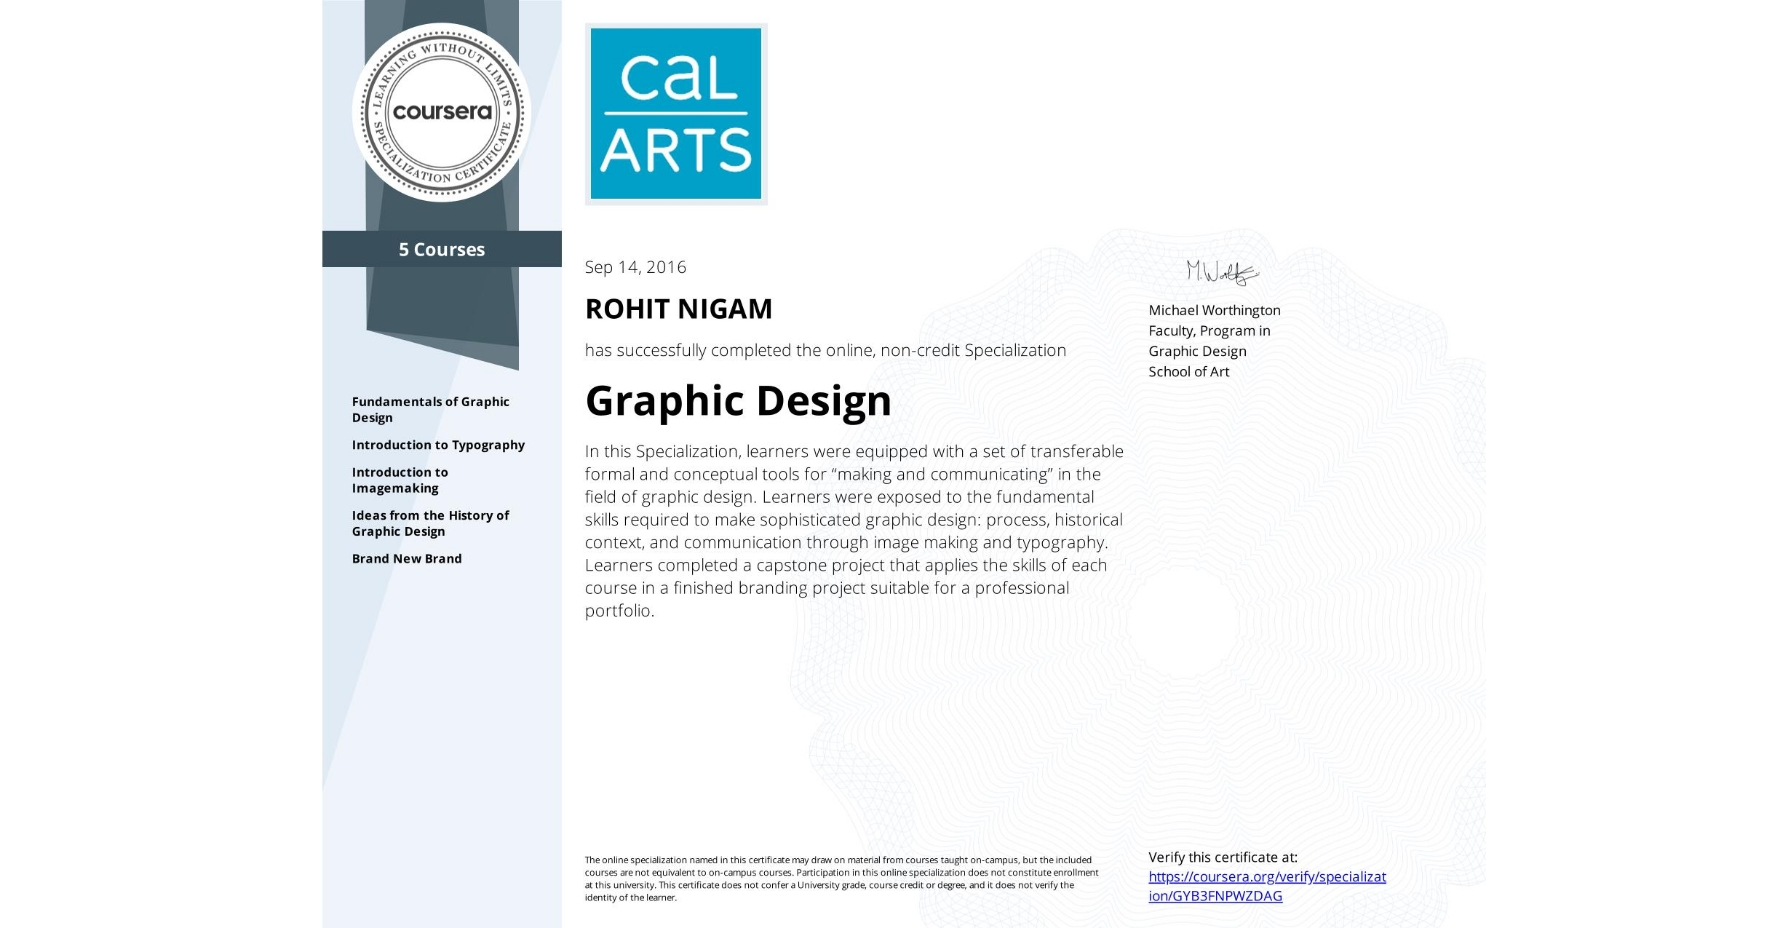 "View certificate for ROHIT NIGAM, Graphic Design, offered through Coursera. In this Specialization, learners were equipped with a set of transferable formal and conceptual tools for ""making and communicating"" in the field of graphic design. Learners were exposed to the fundamental skills required to make sophisticated graphic design: process, historical context, and communication through image making and typography. Learners completed a capstone project that applies the skills of each course in a finished branding project suitable for a professional portfolio."